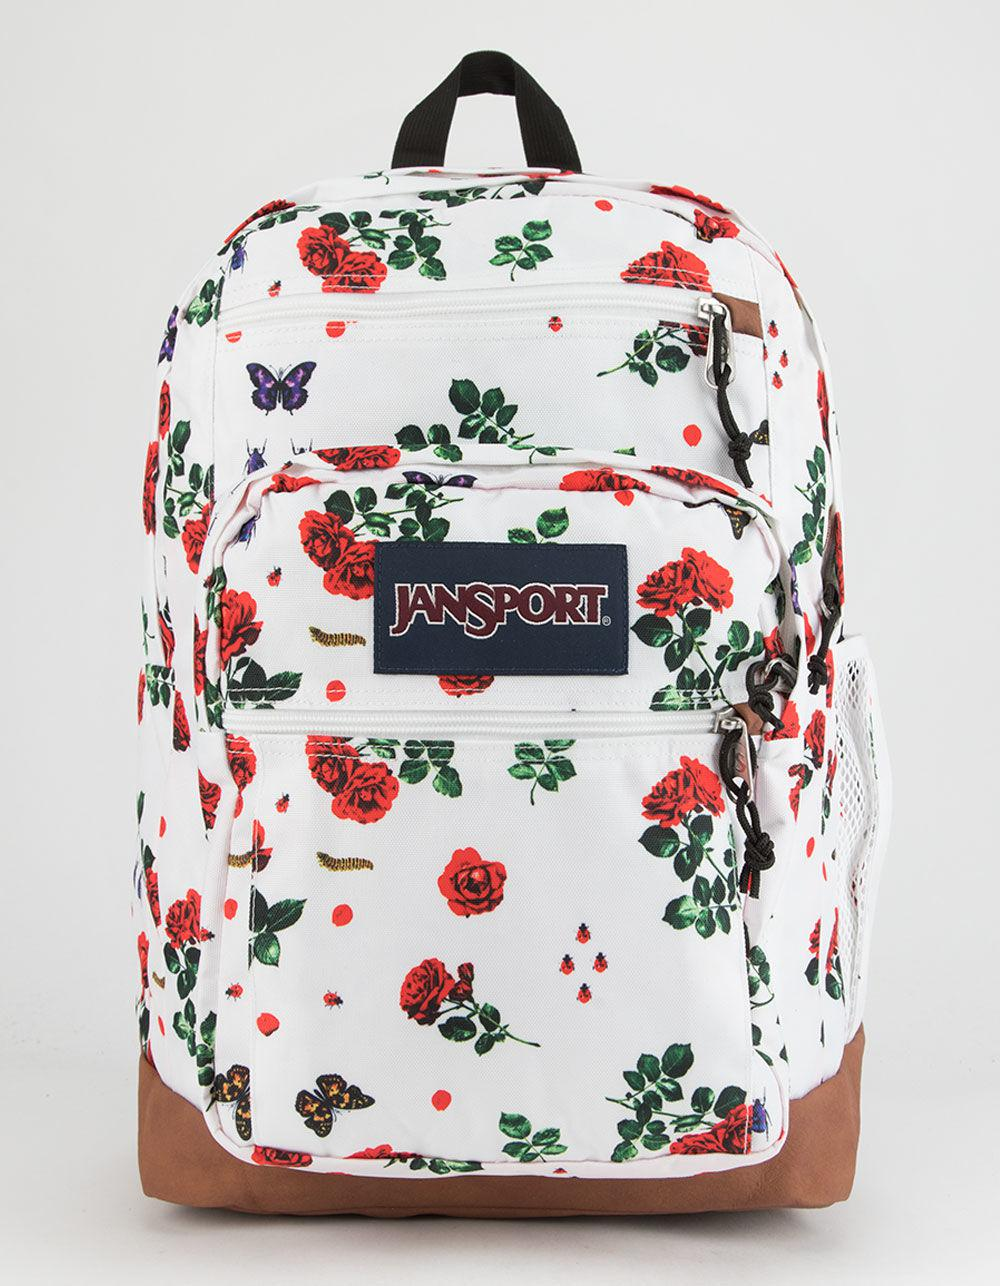 Lyst - Jansport Cool Student Rose Garden Backpack in White a4ef44870f4cb